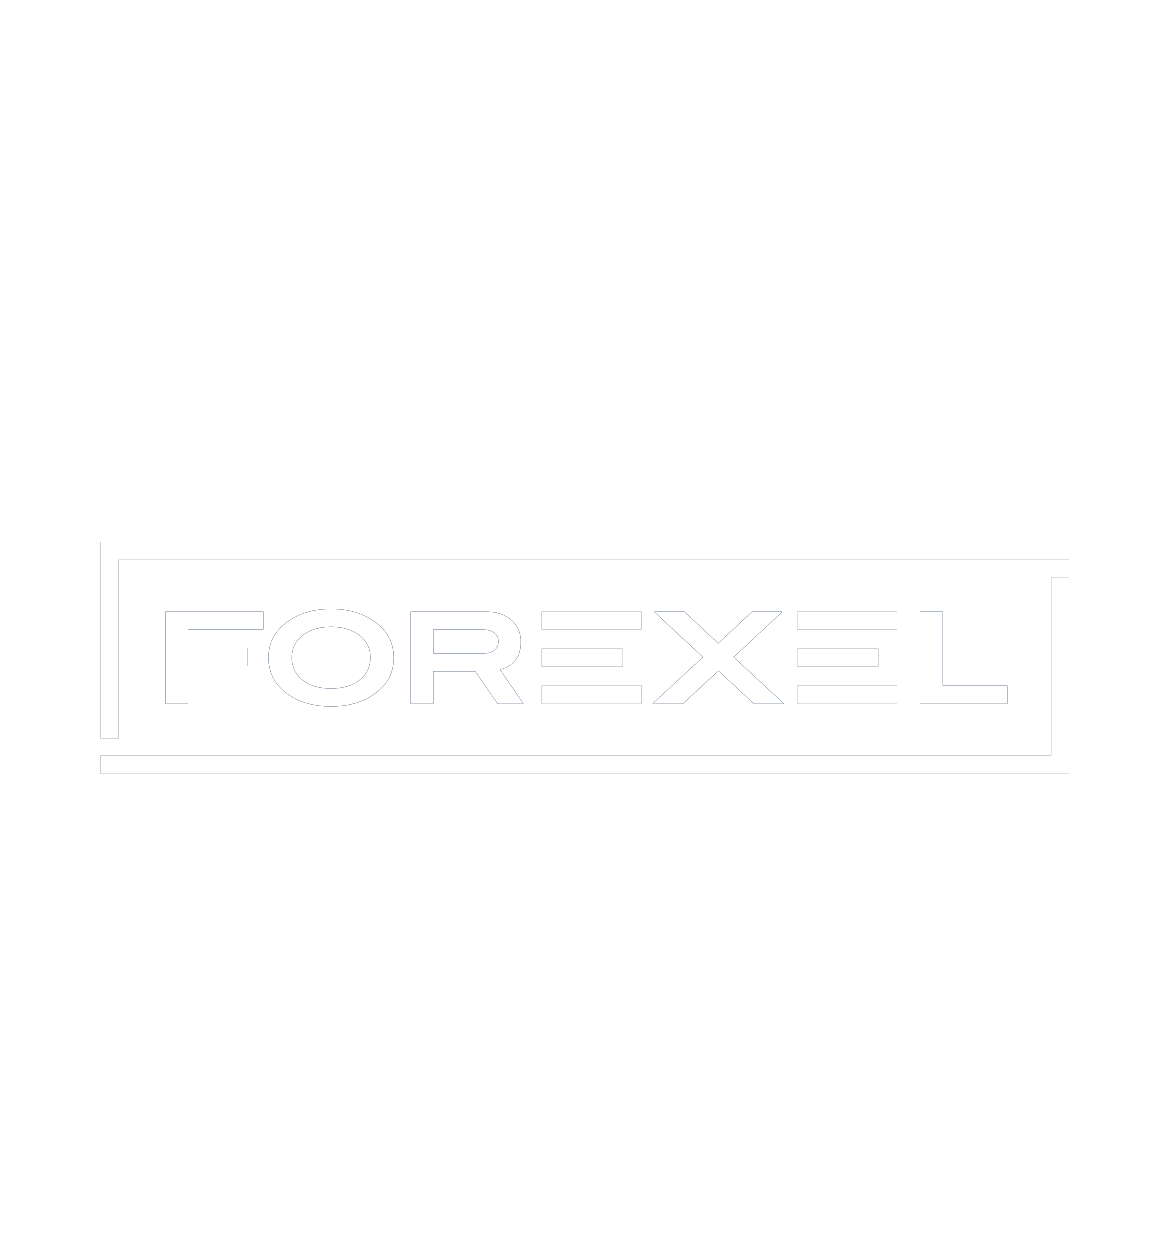 Forexel Image Core